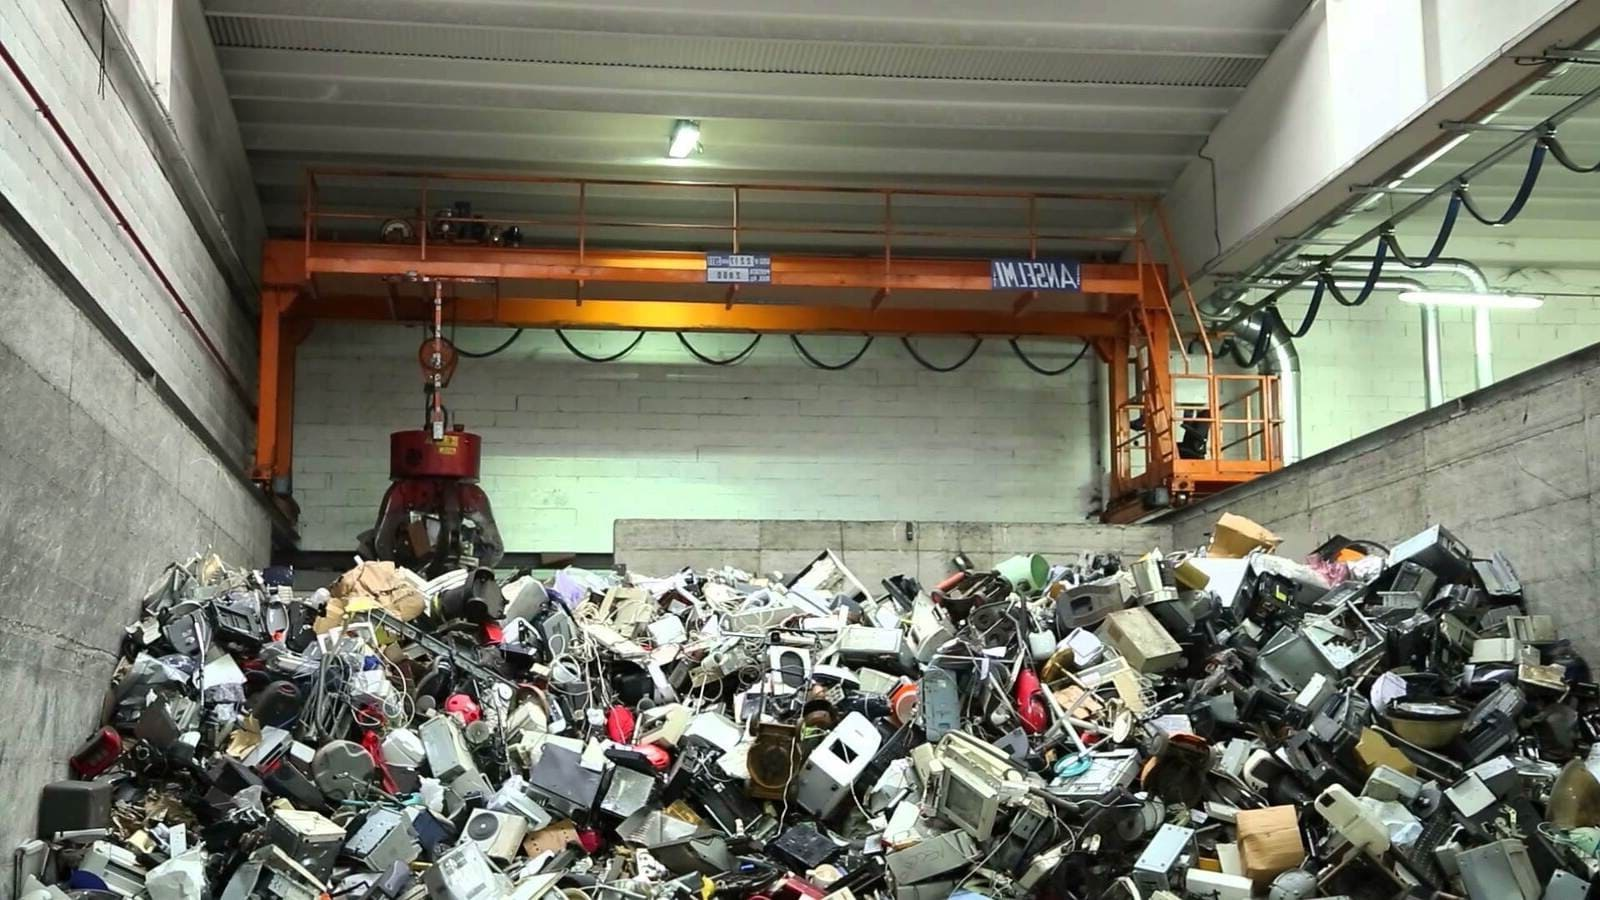 Legal Electronic Recycling Rules